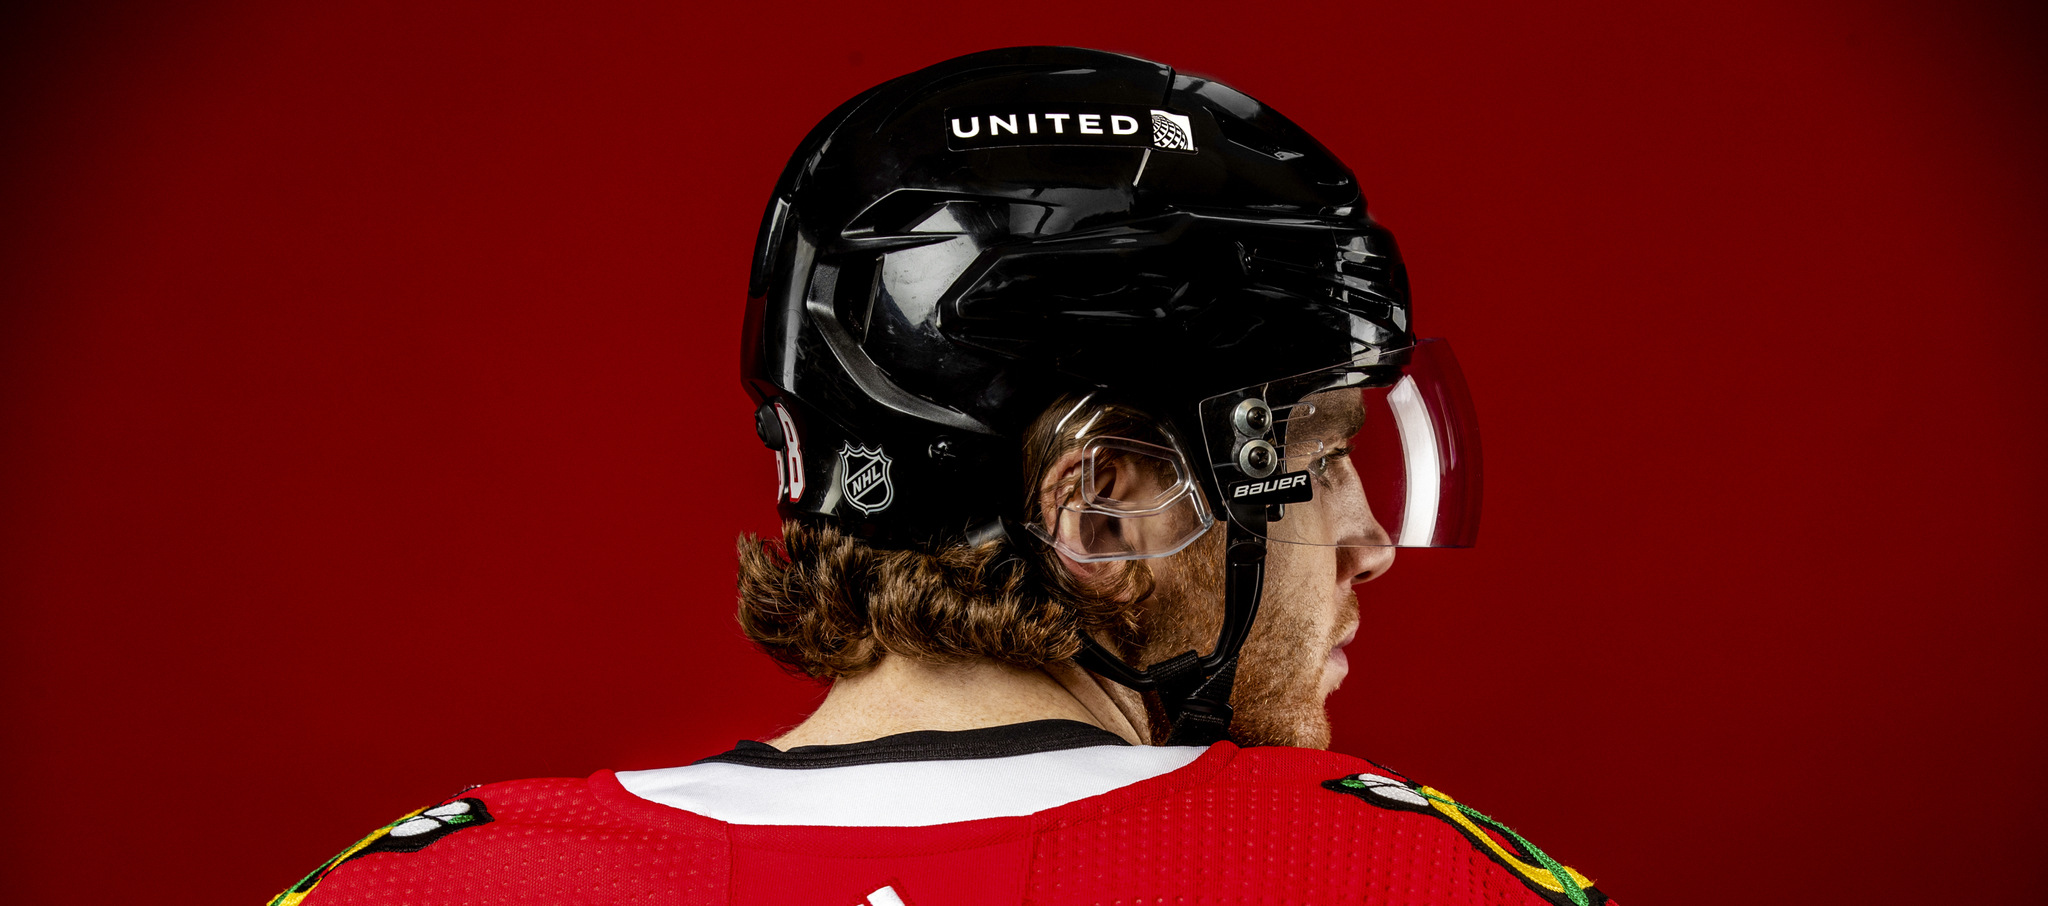 The Chicago Blackhawks have joined a growing list of NHL teams that will feature advertising on players' helmets this season.